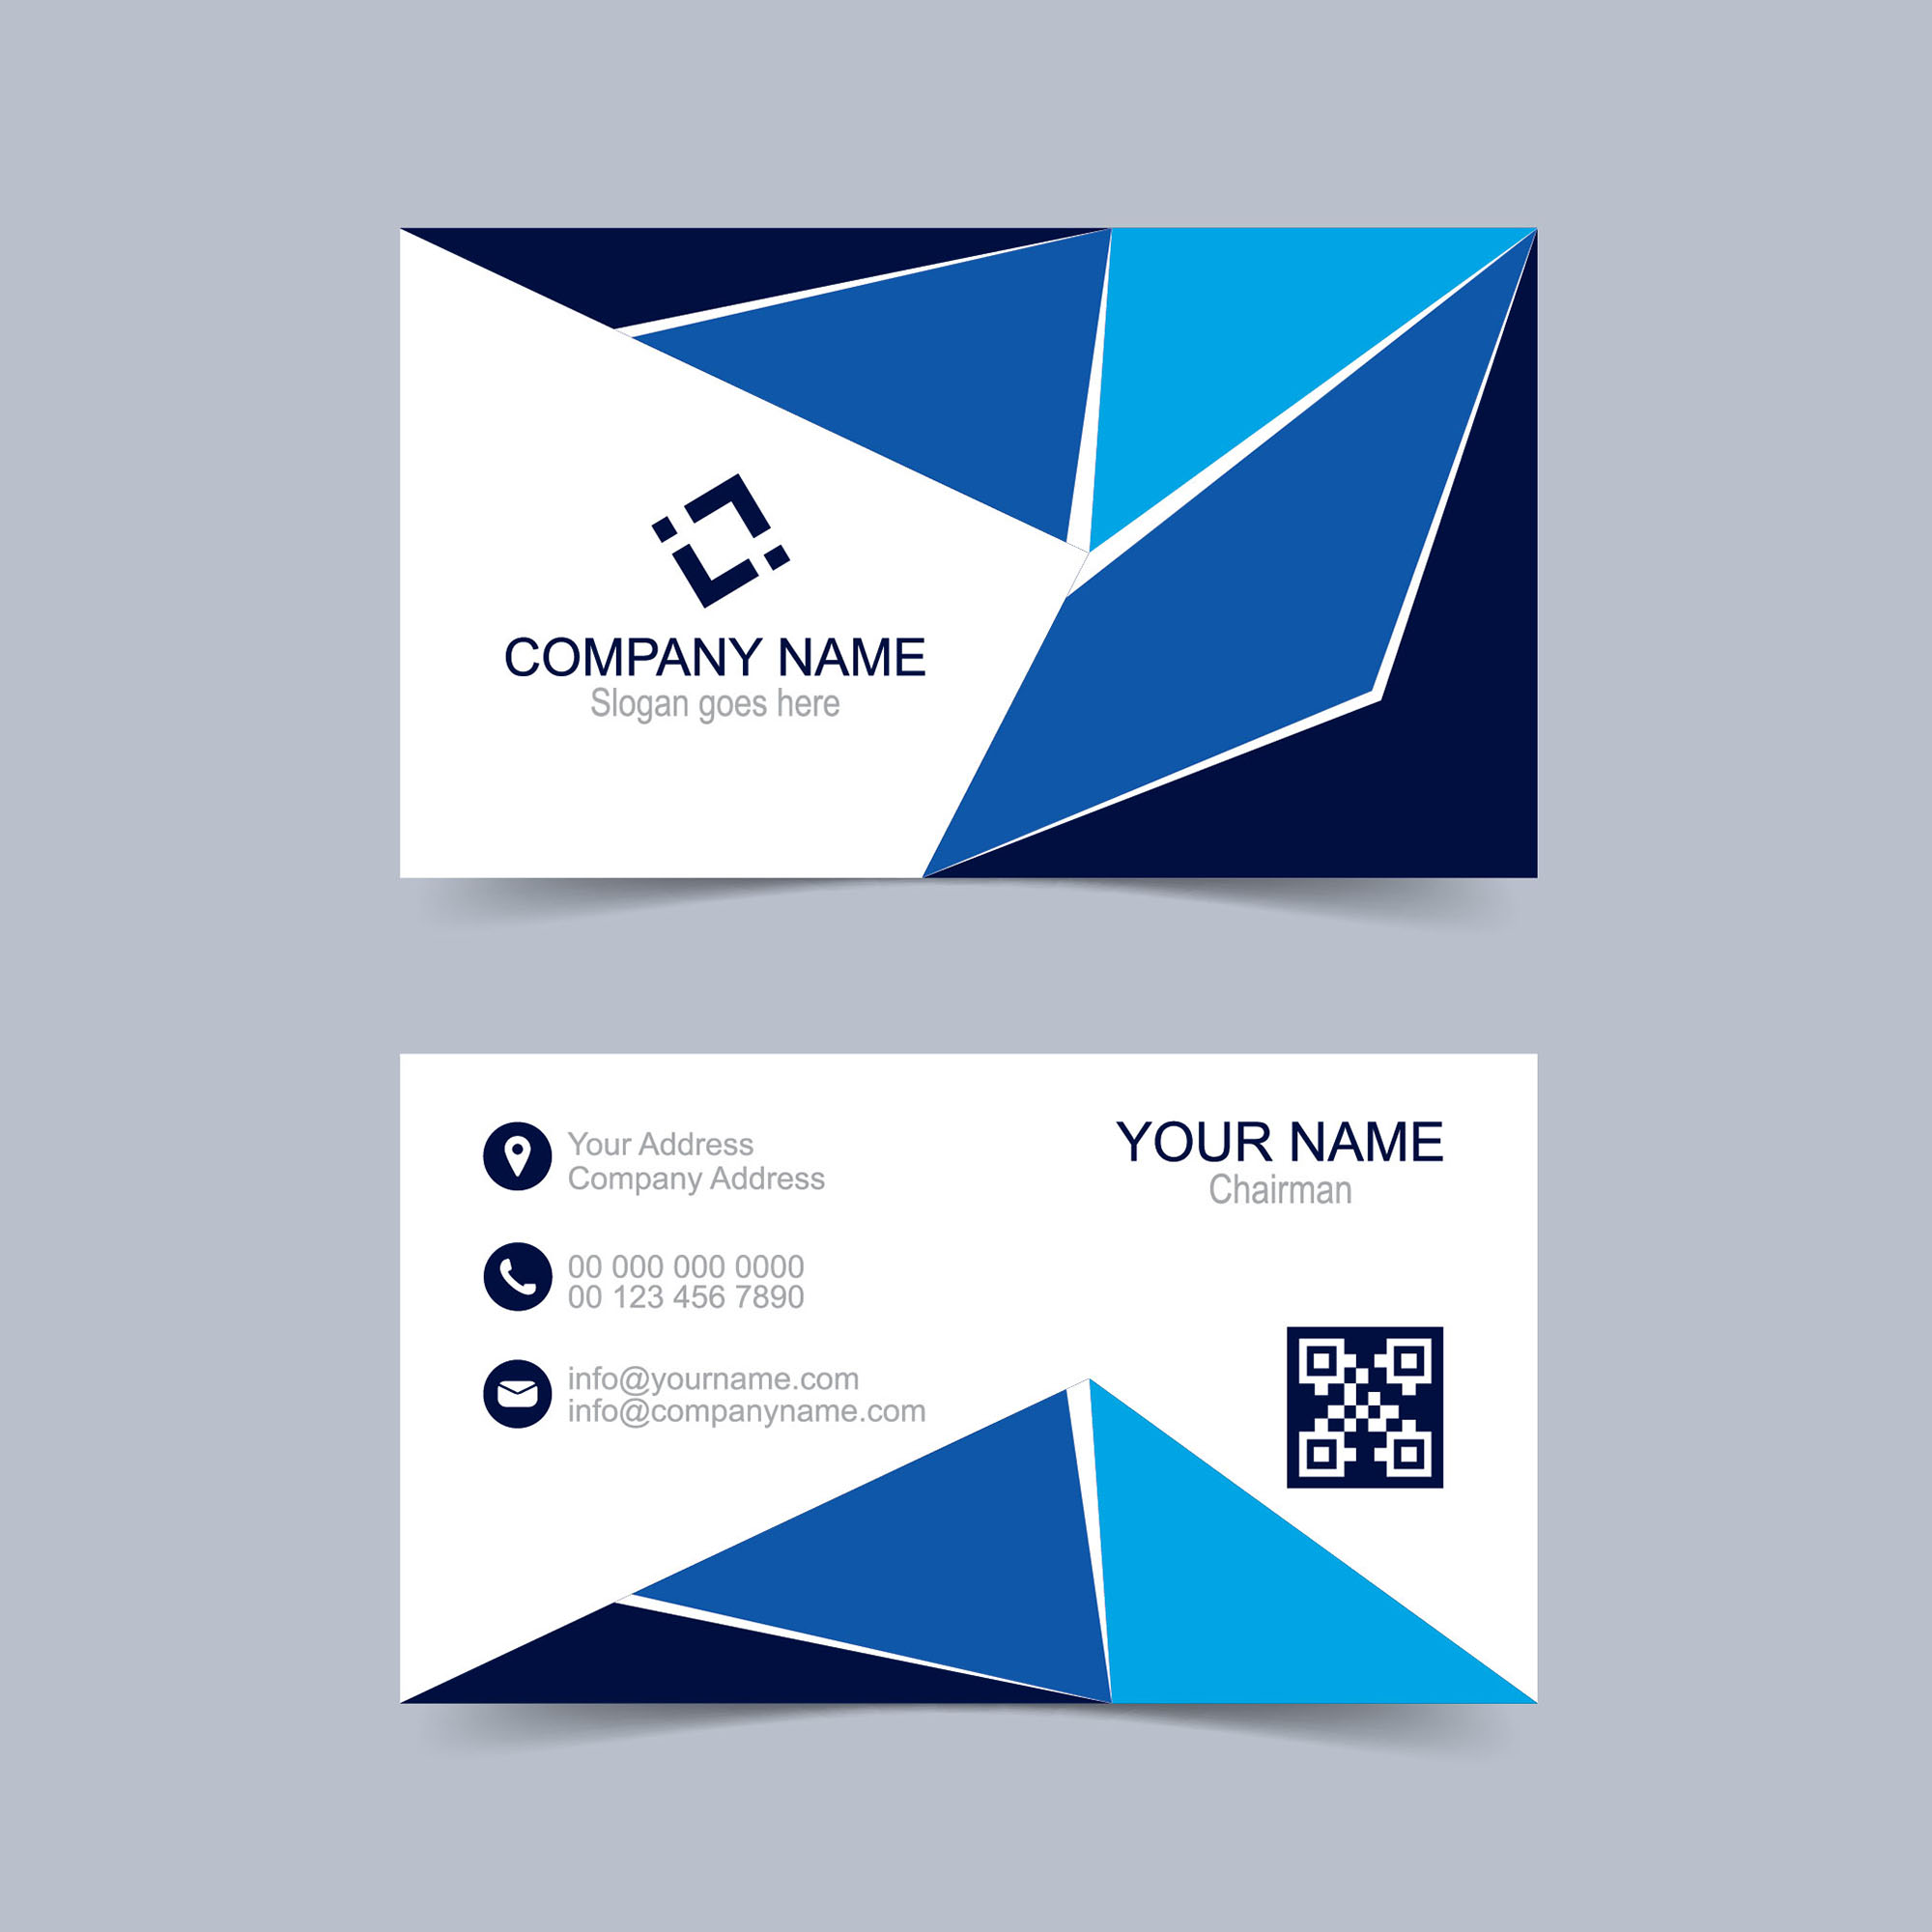 Creative business card design free download wisxi business card business cards business card design business card template design templates flashek